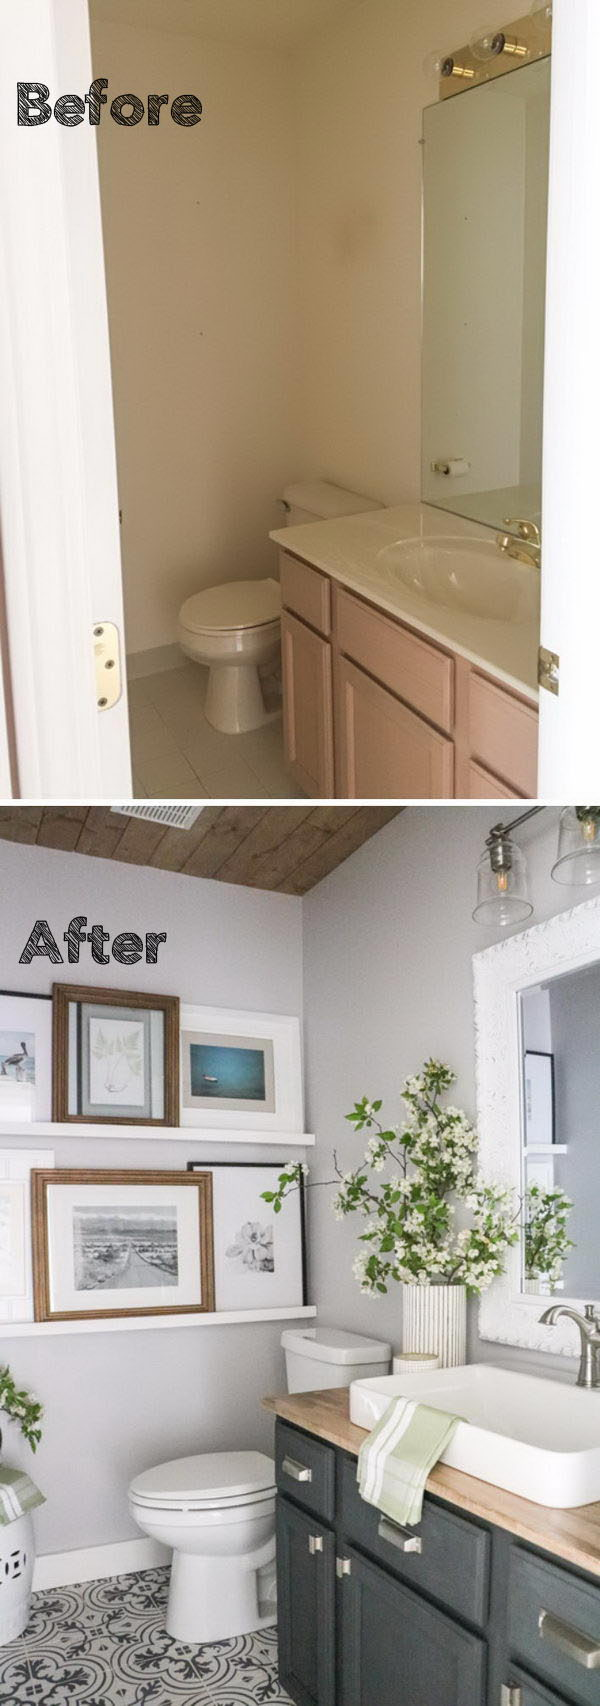 Incorporated A Gallery Wall For Lots More Interest And Something Unexpected In A Bathroom.